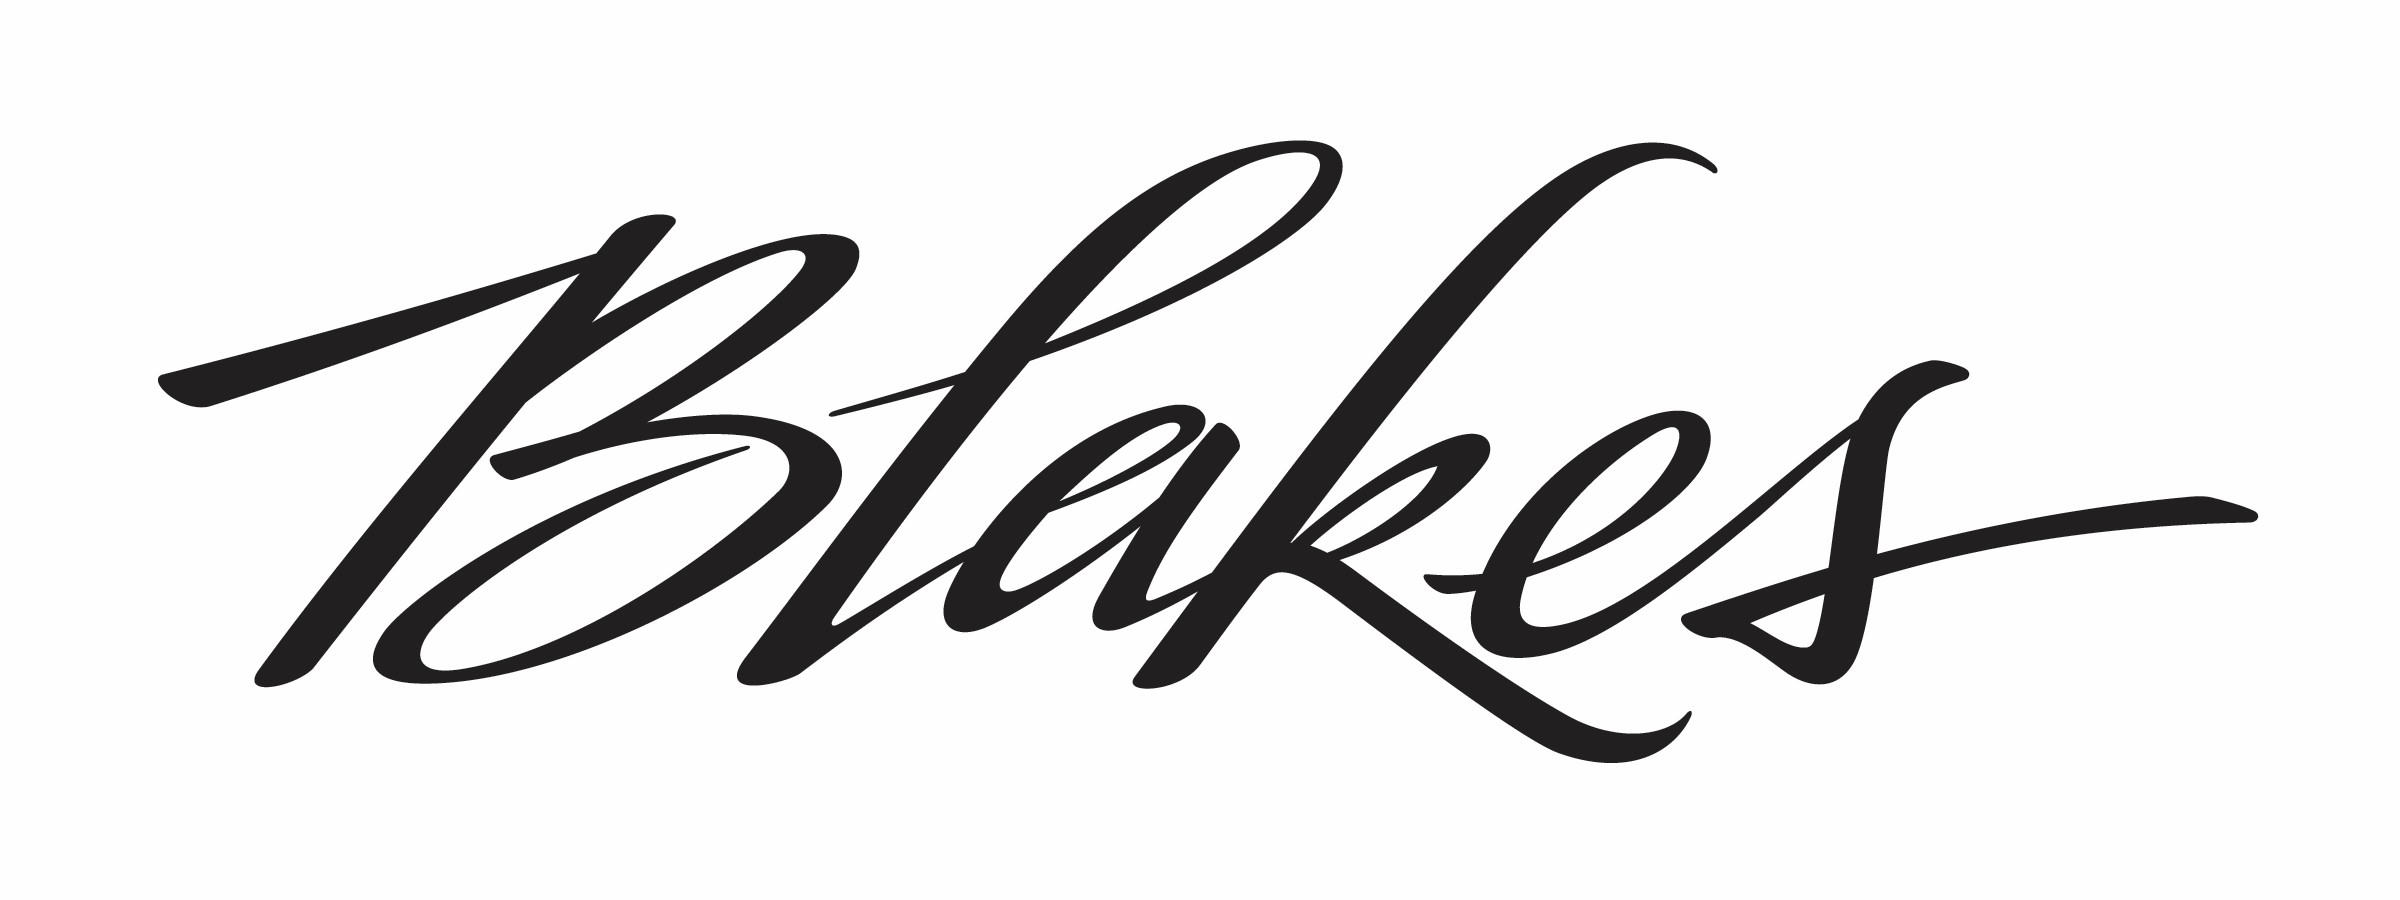 Blakes-logo_No_Tag_7in (1).jpg